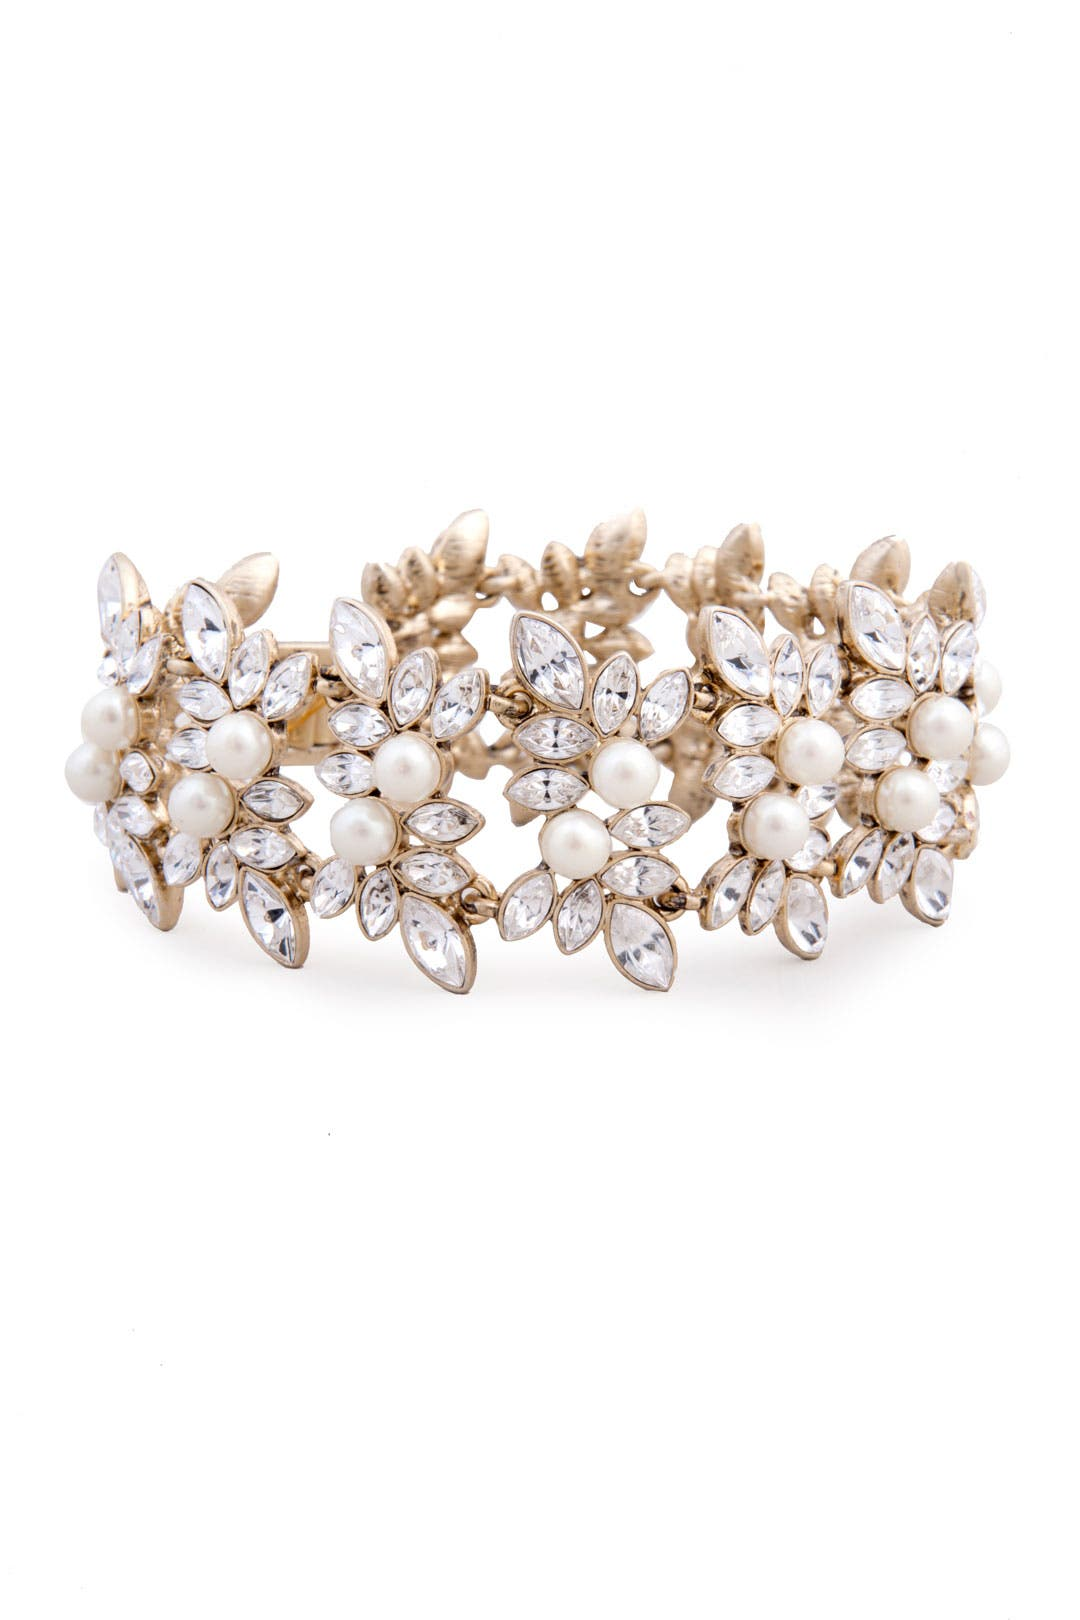 Simply Yours Bracelet by Nicole Miller Accessories